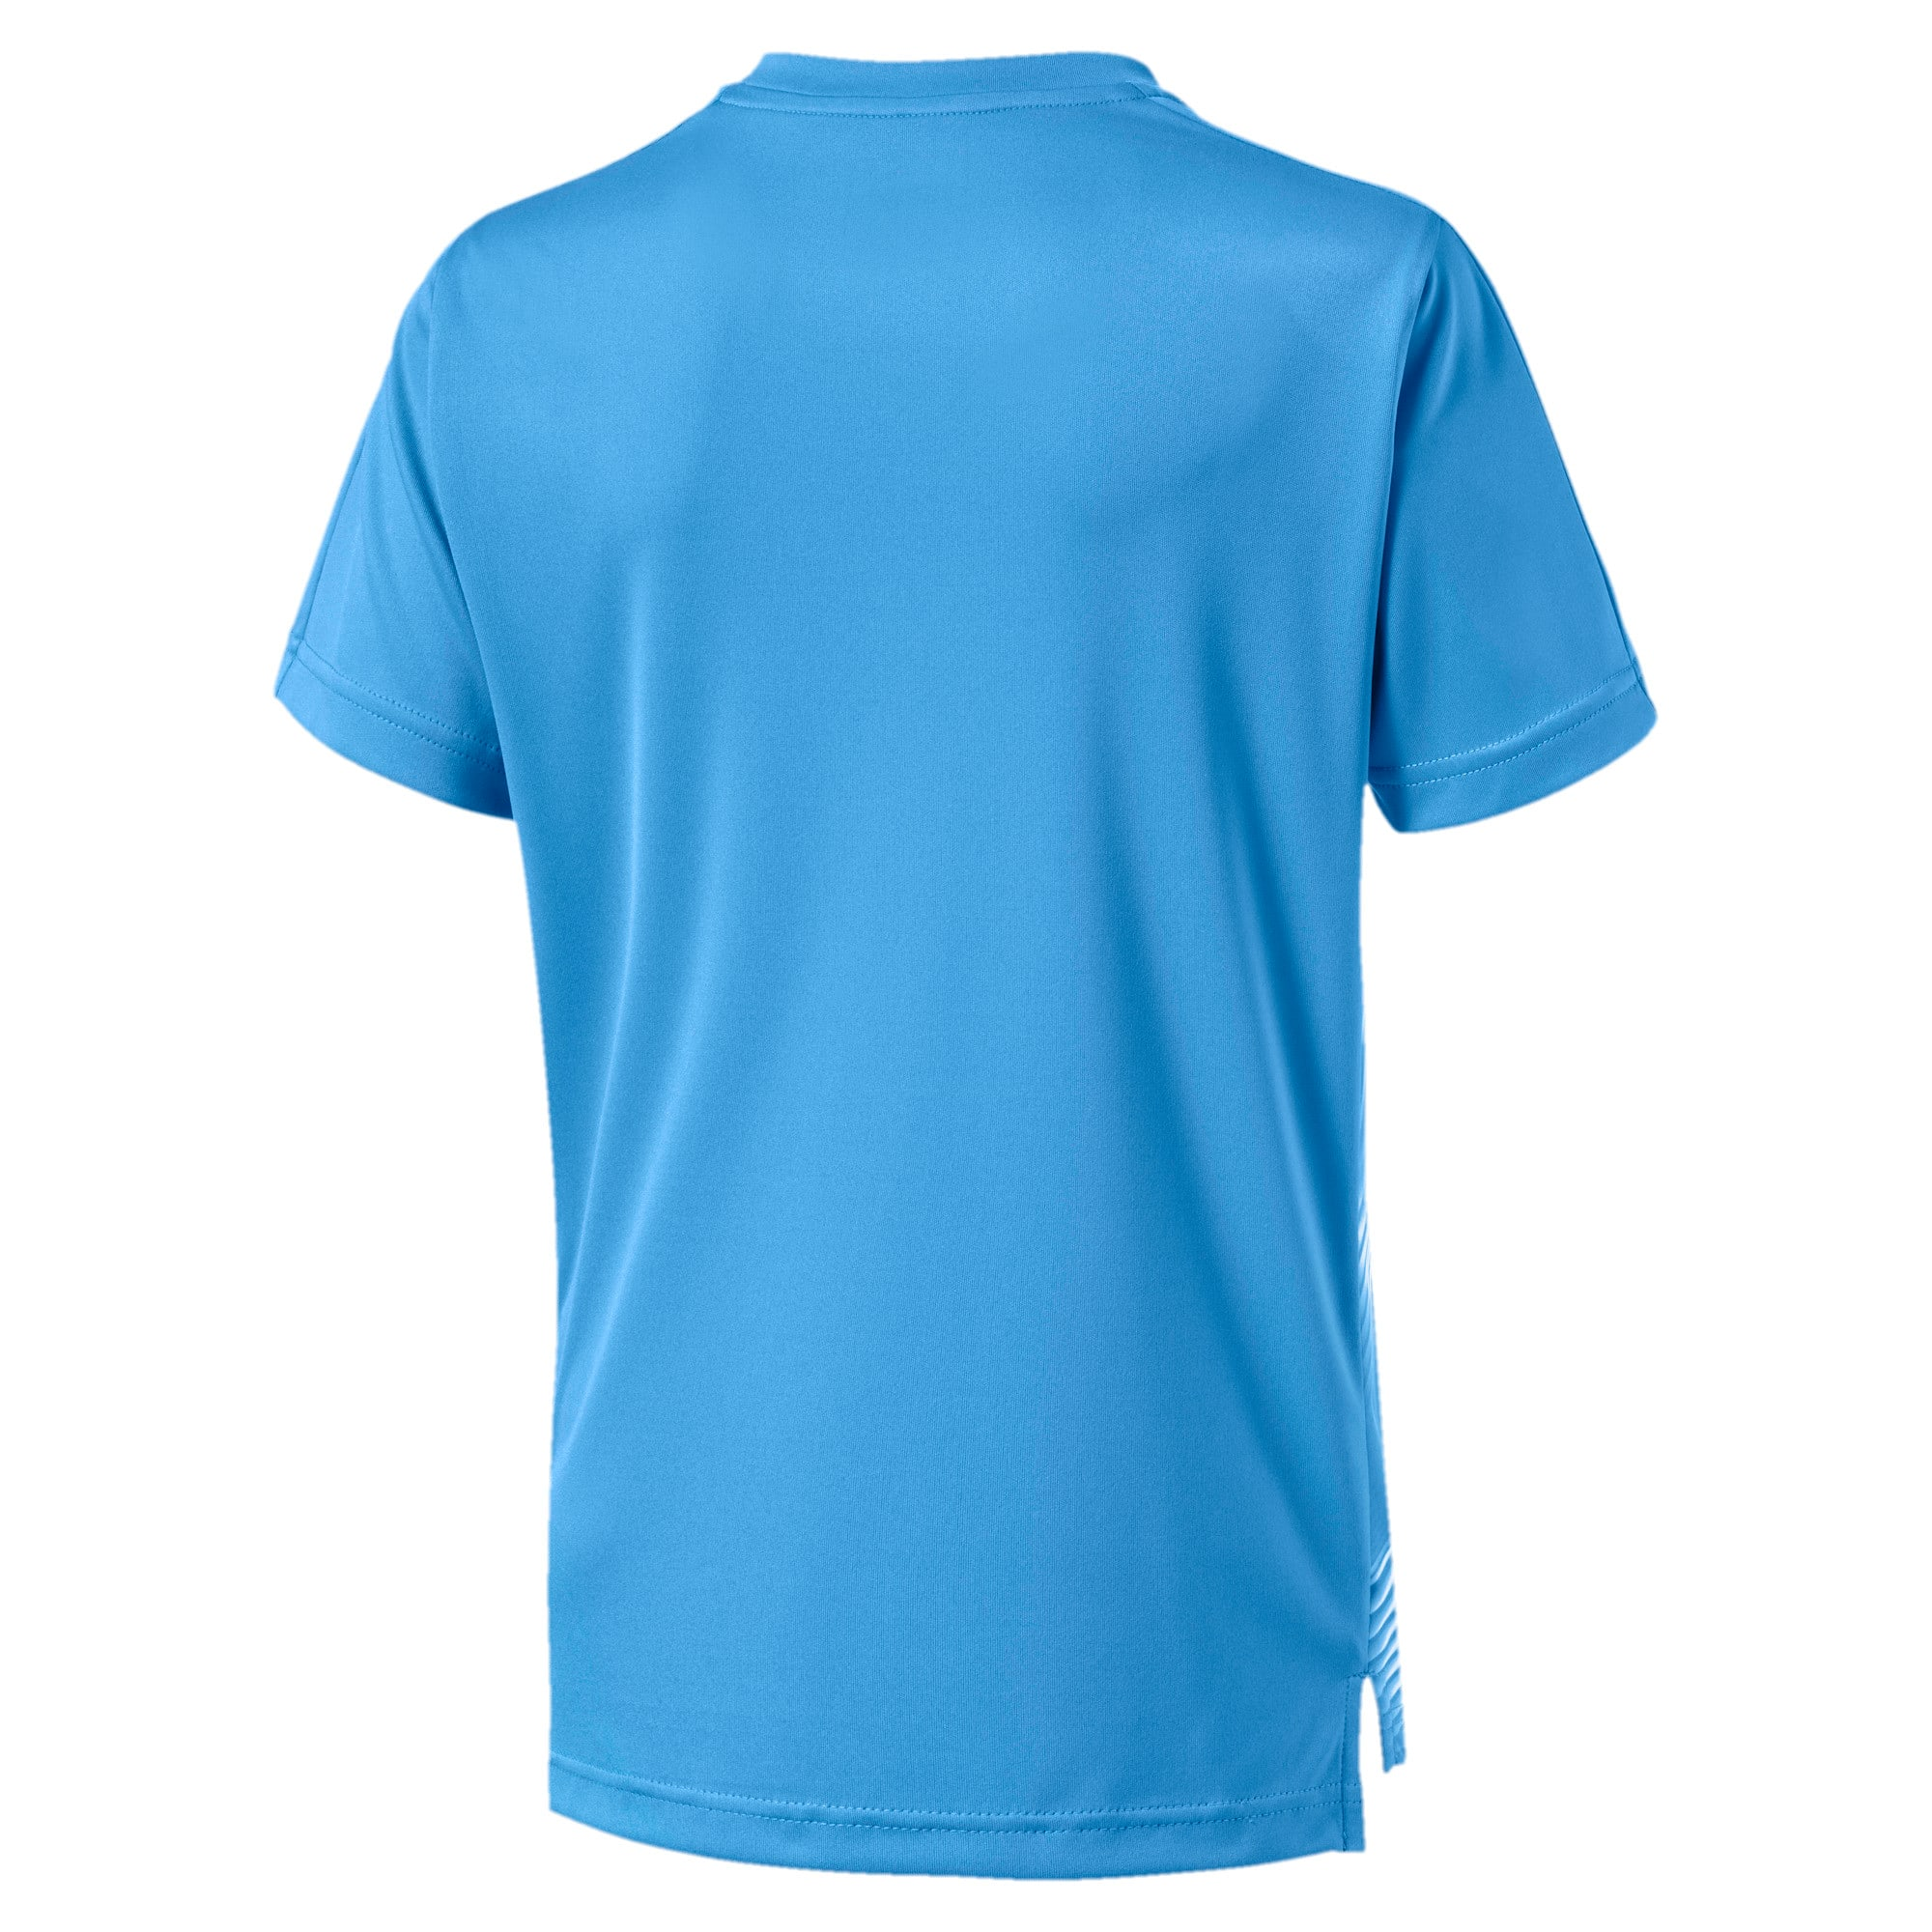 Thumbnail 2 of Olympique de Marseille Stadium Boys' Jersey, Bleu Azur-Puma White, medium